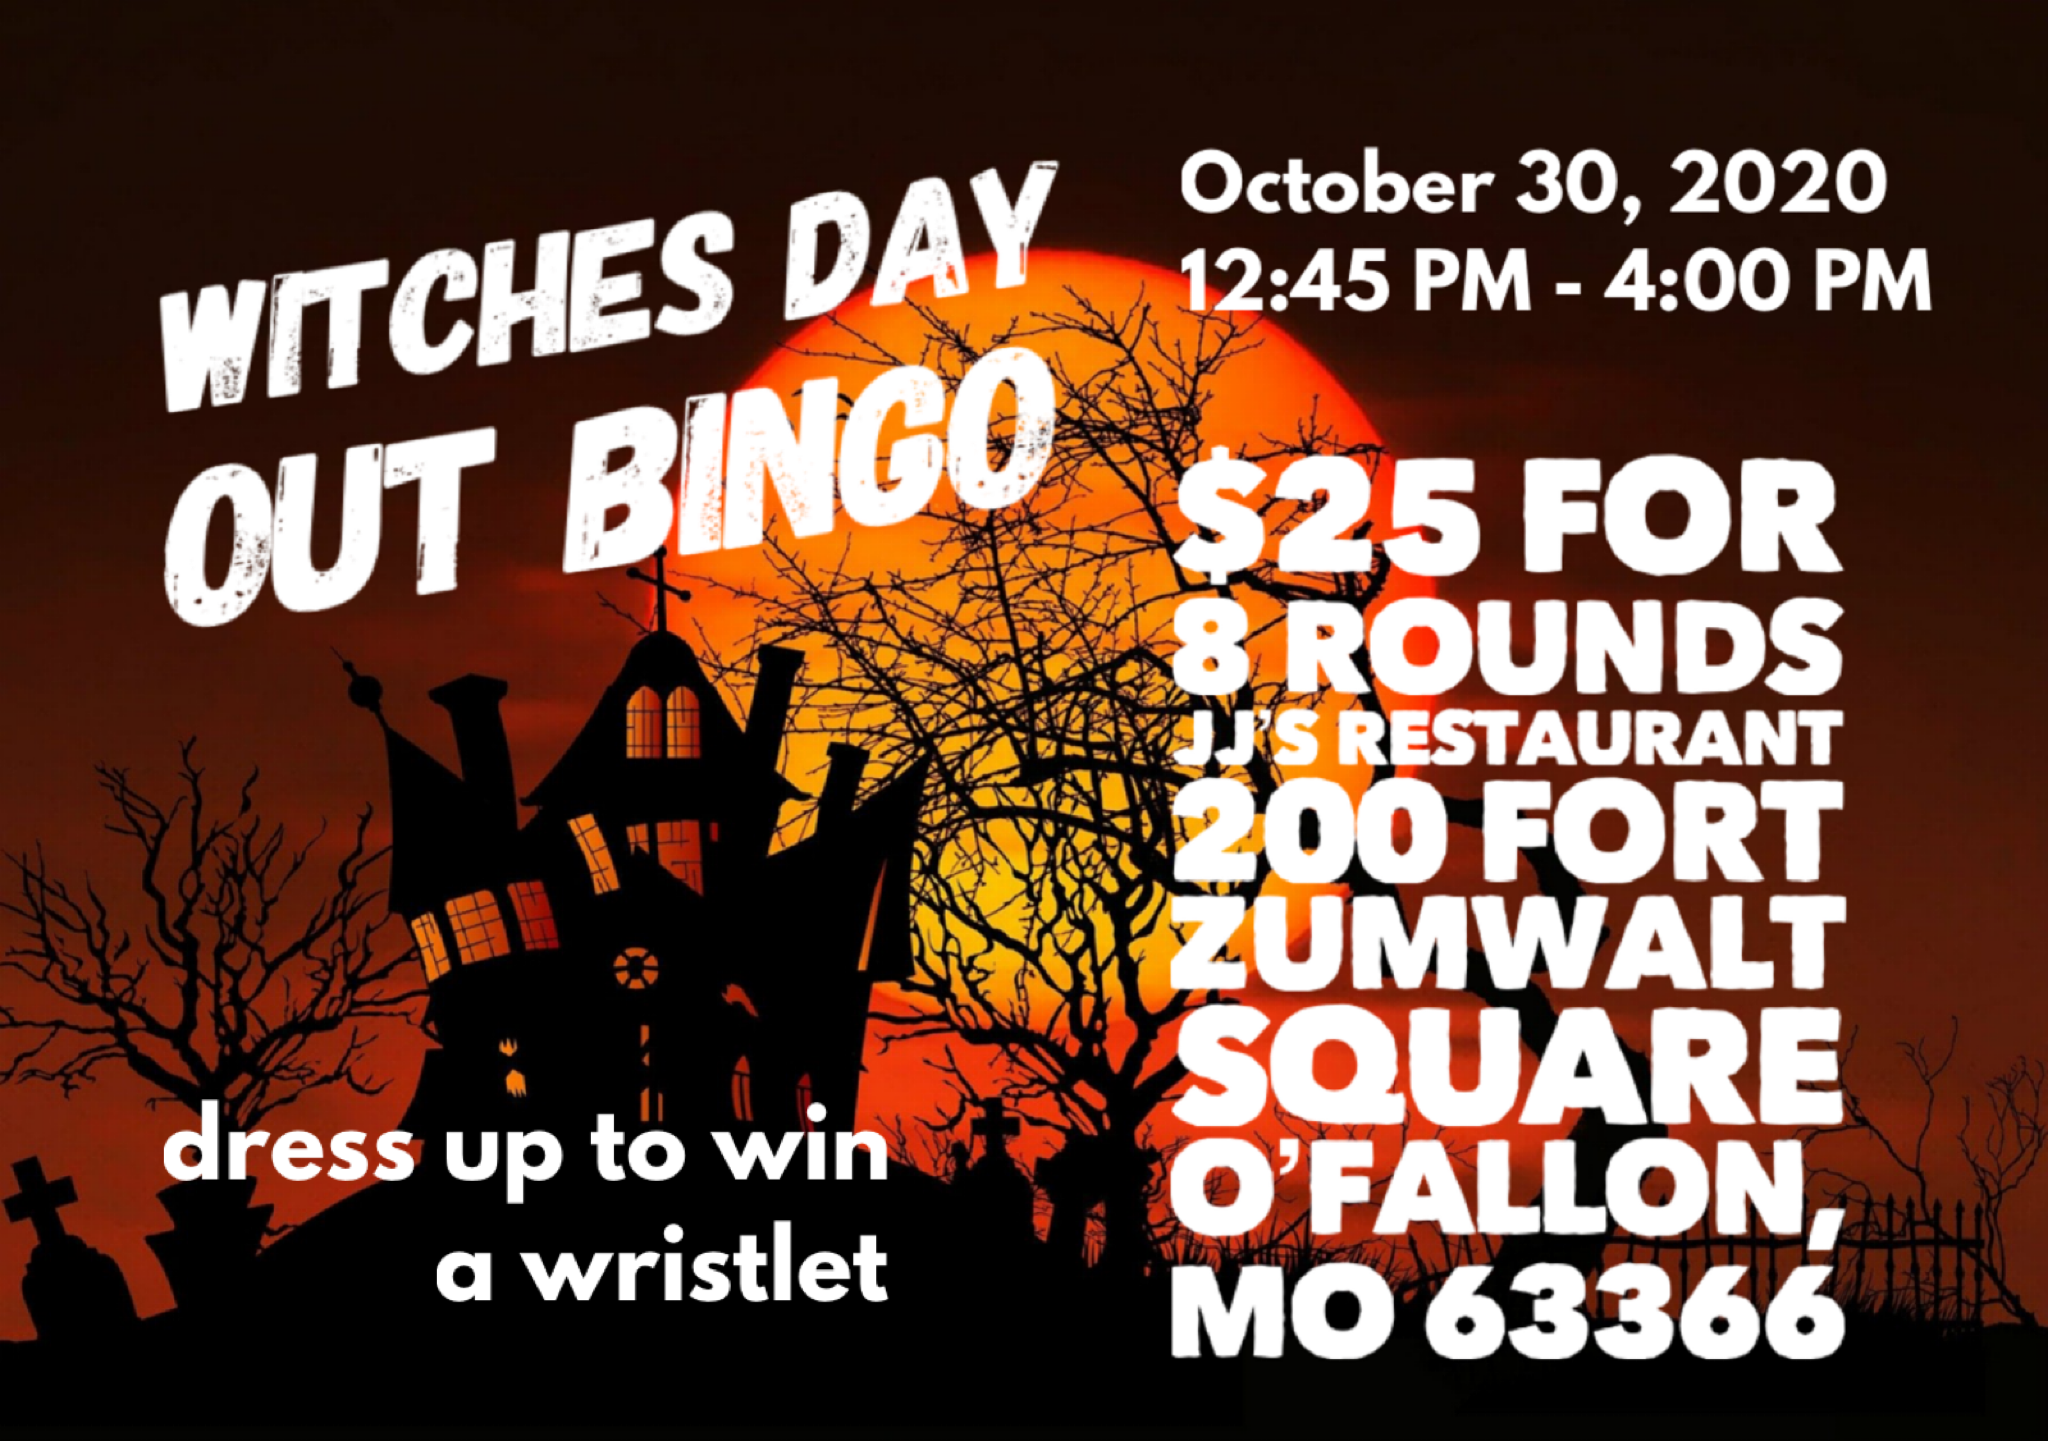 Witches Day Out Bingo